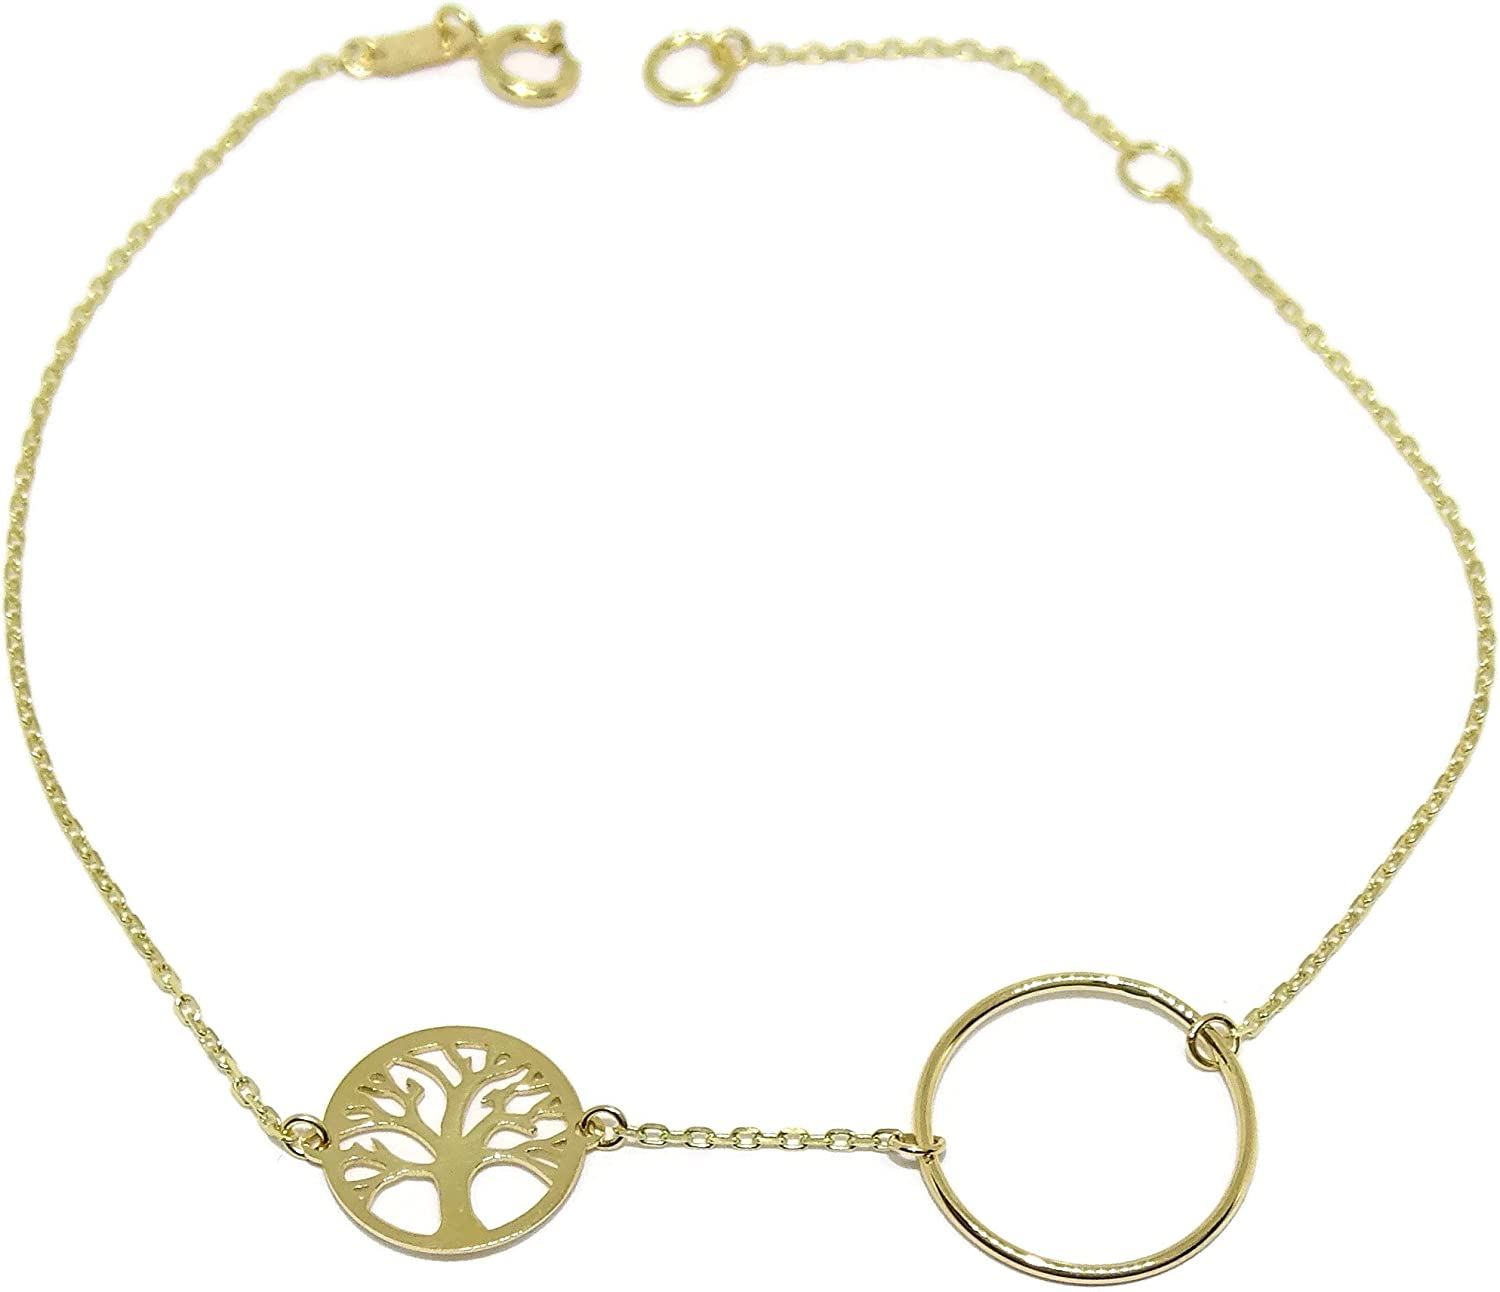 Never say Never Tree of Life Bracelet 18K Yellow Gold for Women   Circle Karma Charm Links Bangle 19cm long   1.05g Real Gold   Symbolic Jewelry   Meaningful Gift for Her